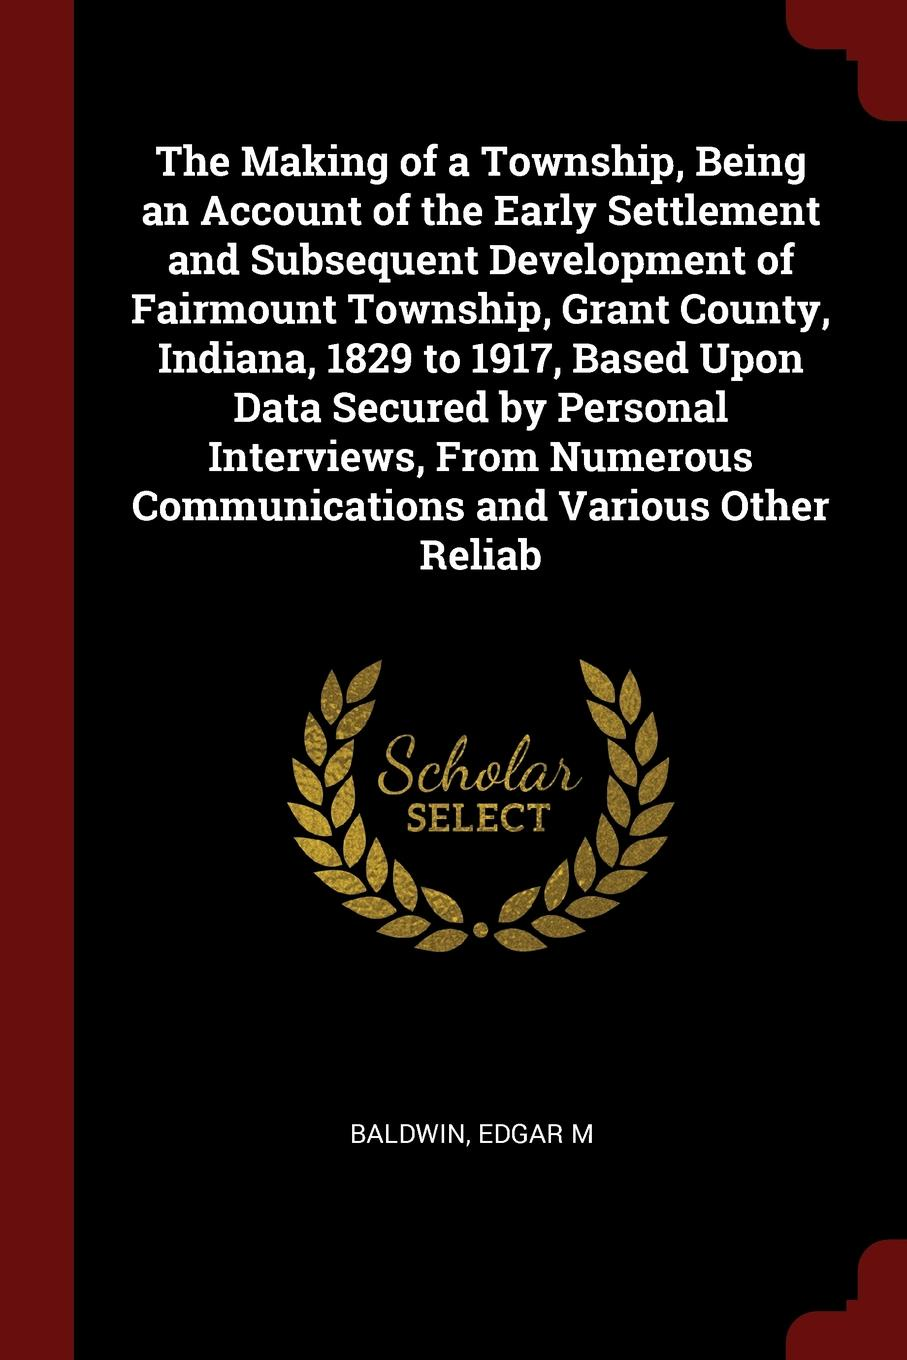 The Making of a Township, Being an Account of the Early Settlement and Subsequent Development of Fairmount Township, Grant County, Indiana, 1829 to 1917, Based Upon Data Secured by Personal Interviews, From Numerous Communications and Various Othe...